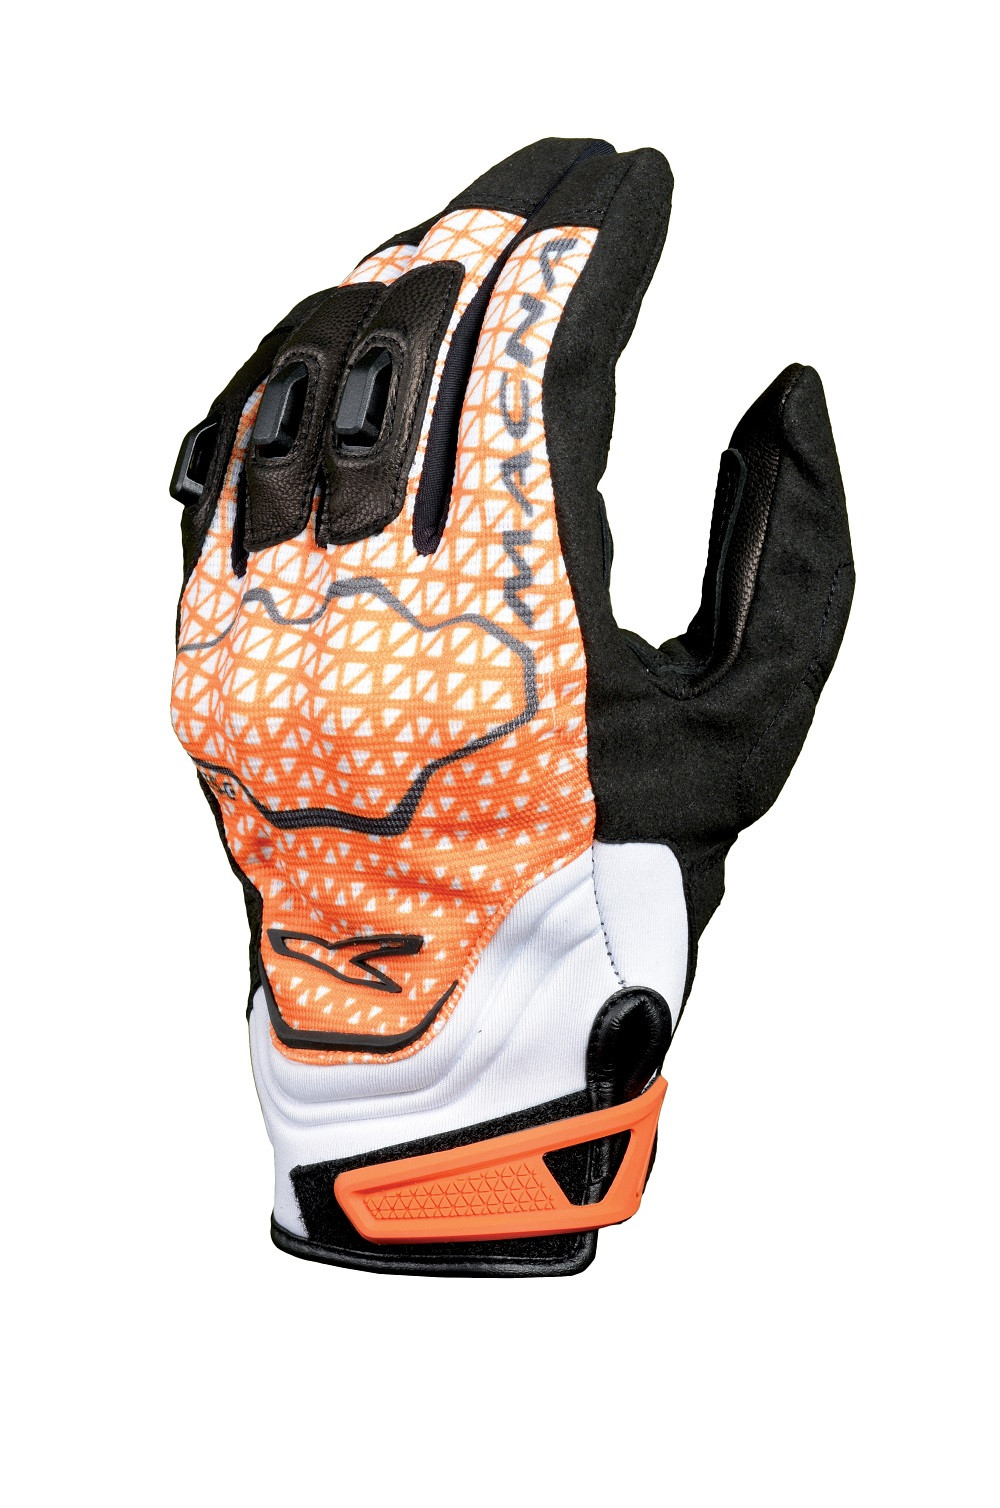 Macna leather summer gloves Assault black orange